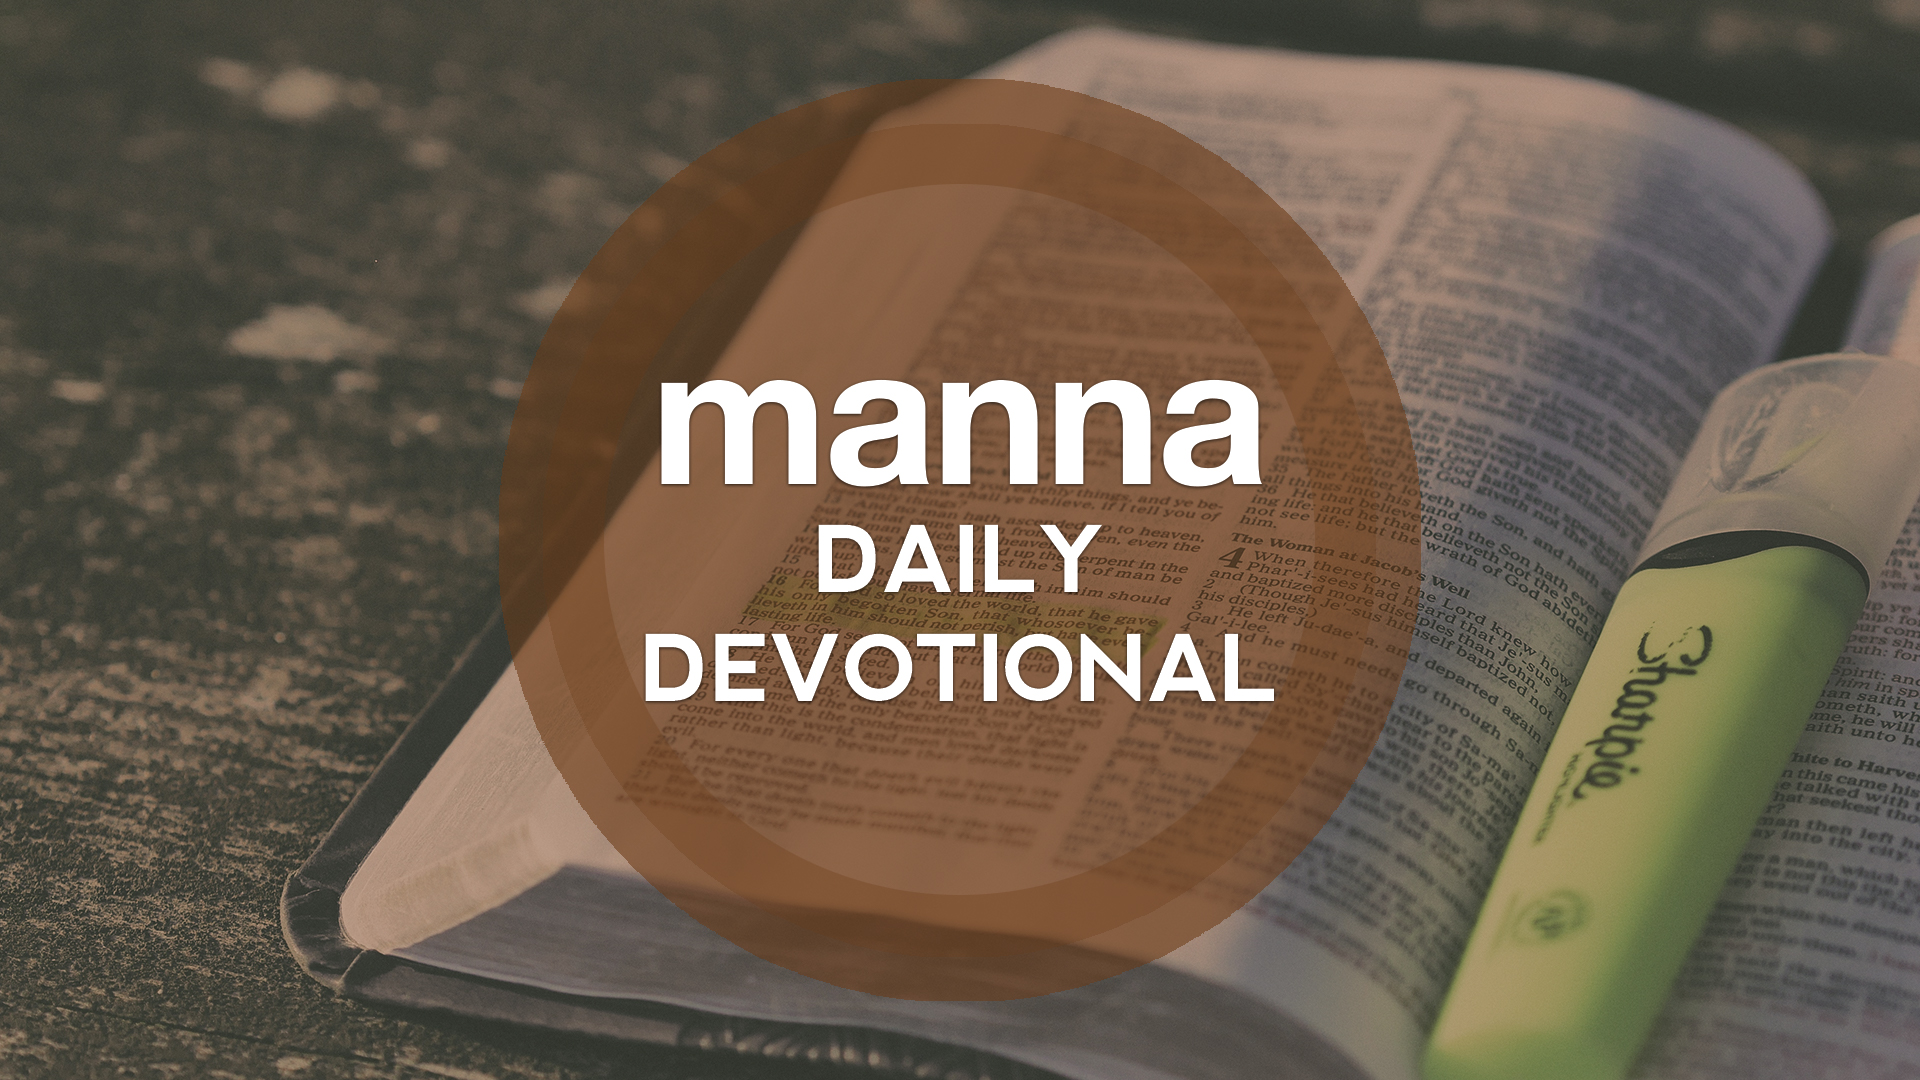 Manna Daily Devotional